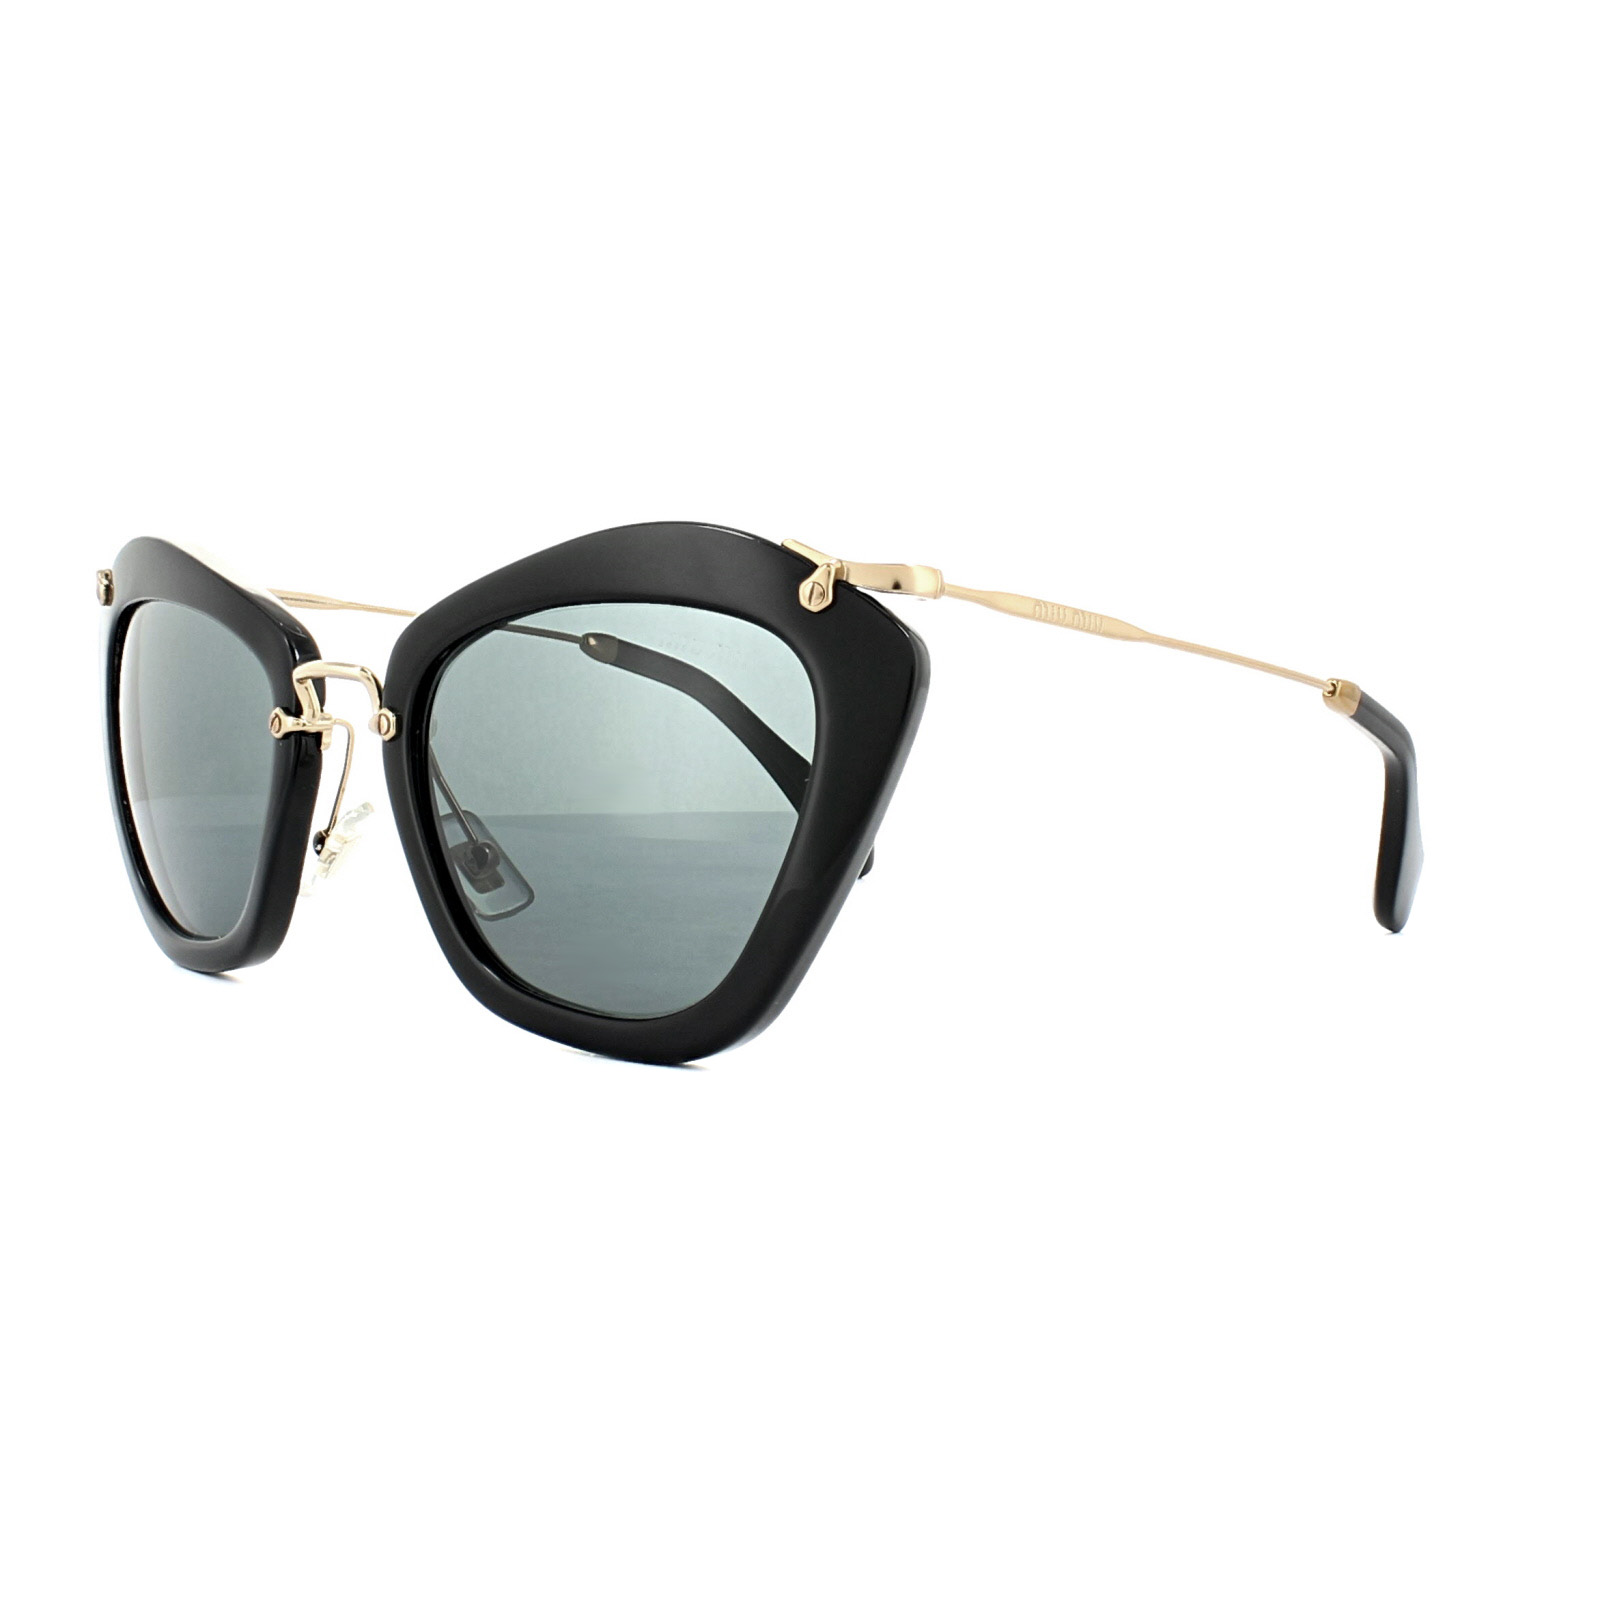 new arrival ce387 5bdba Miu Miu Sunglasses Ebay | Louisiana Bucket Brigade